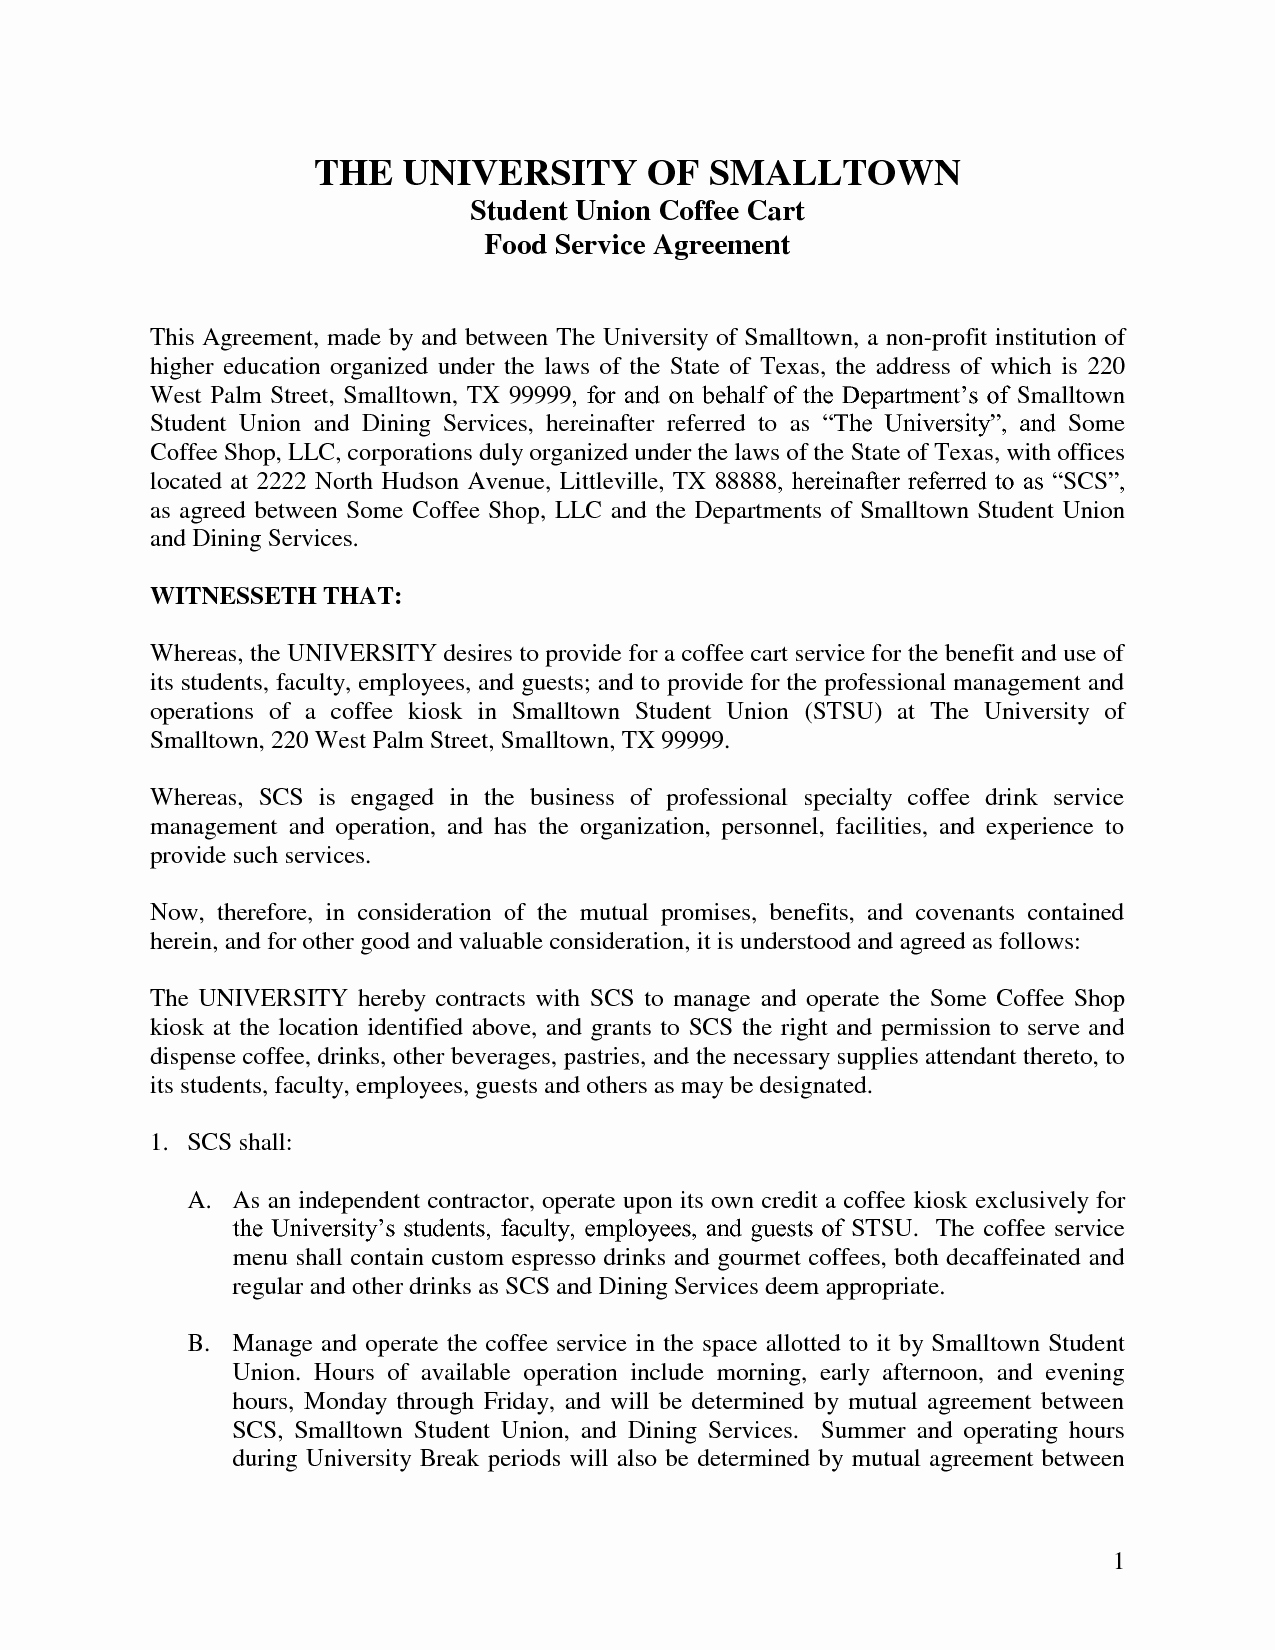 Contract Template Between Two Parties New Agreement Template Category Page 39 Efoza